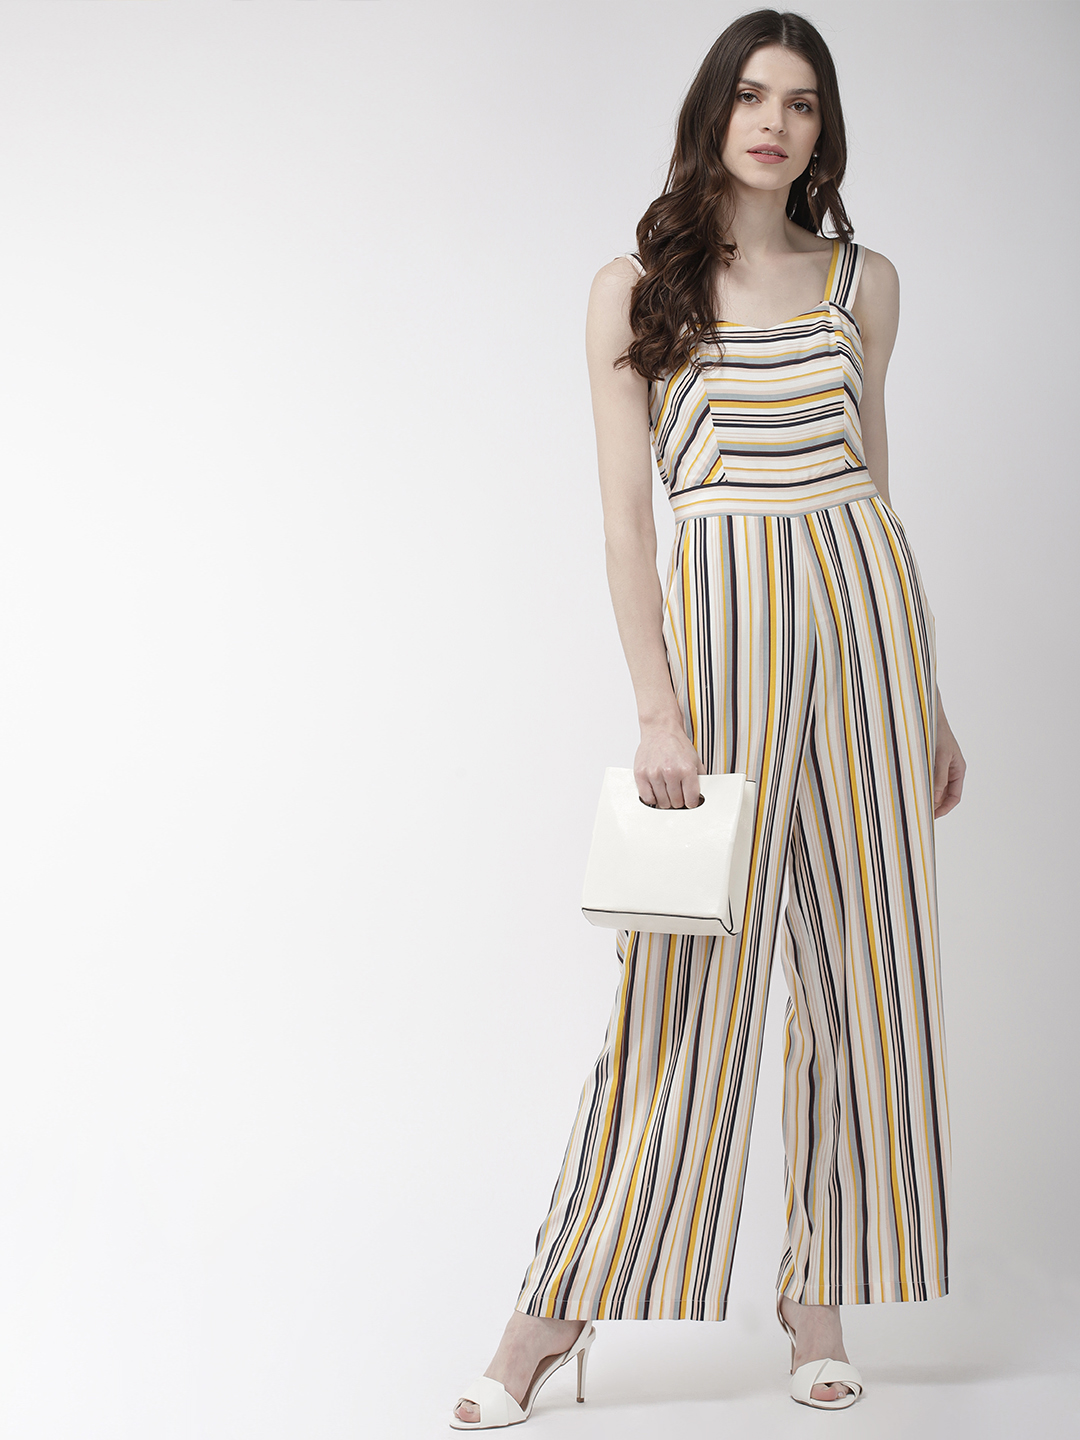 Jumpsuits-The Girl In The Striped Jumpsuit1